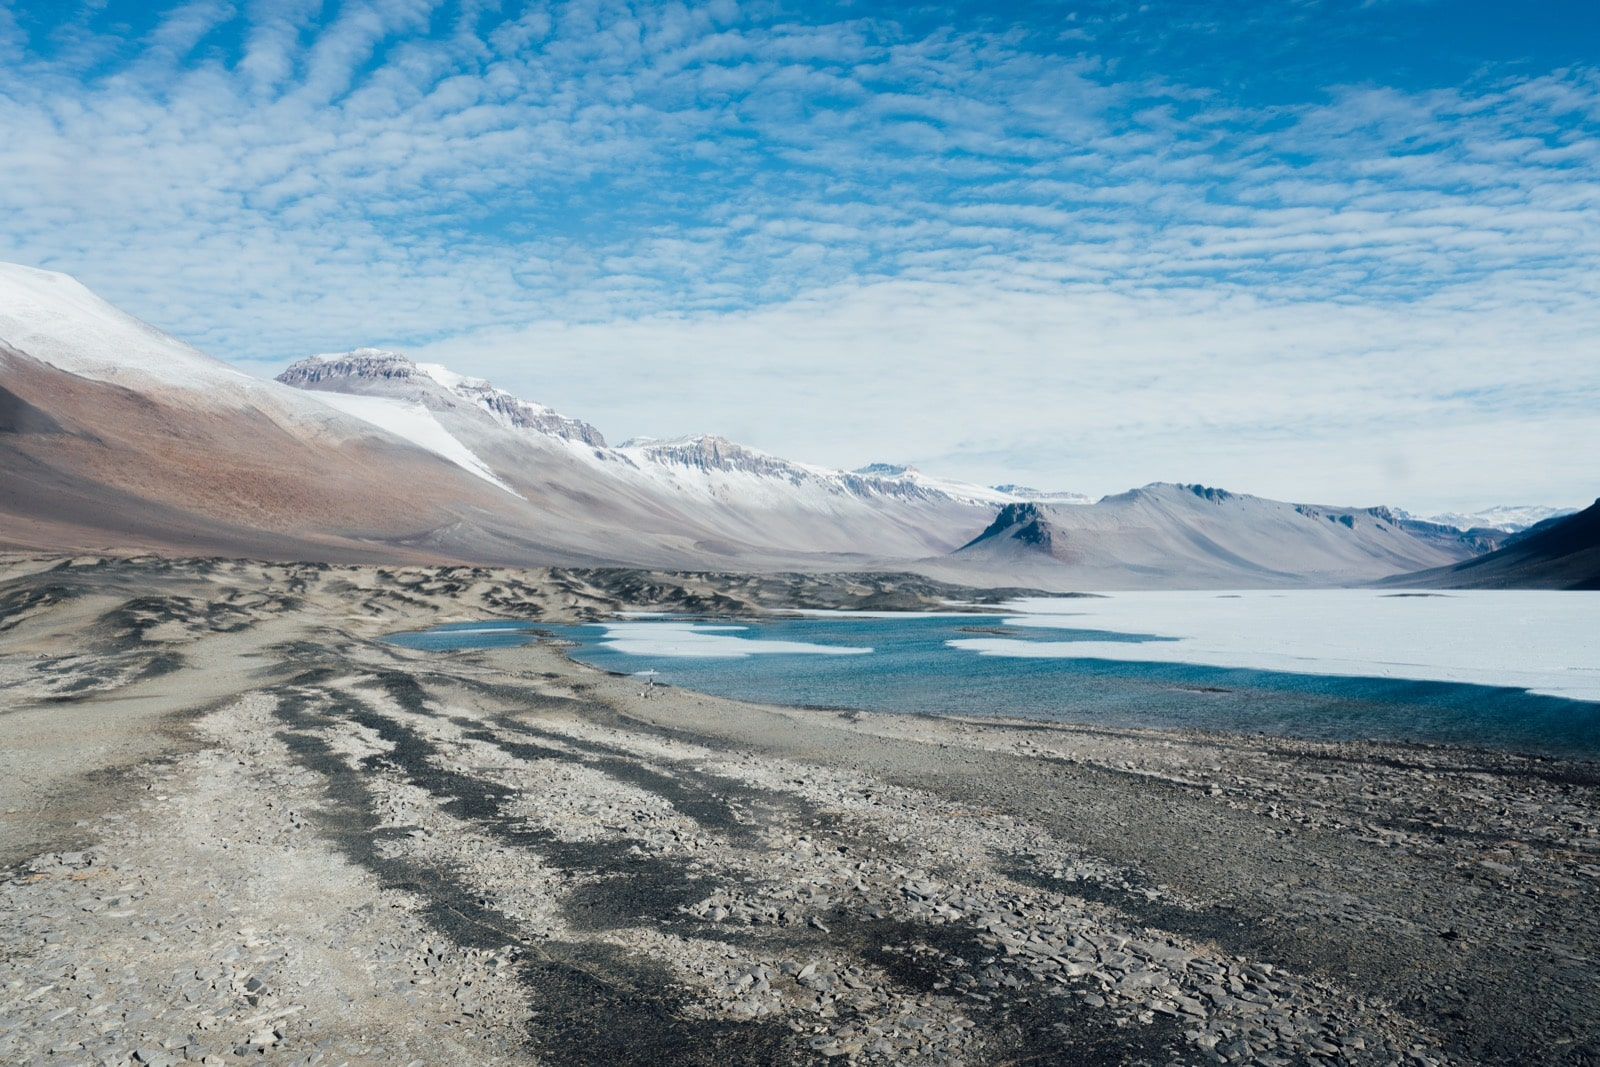 a landscape shot of a desolate landscape, populated by mountains, and a melting lake